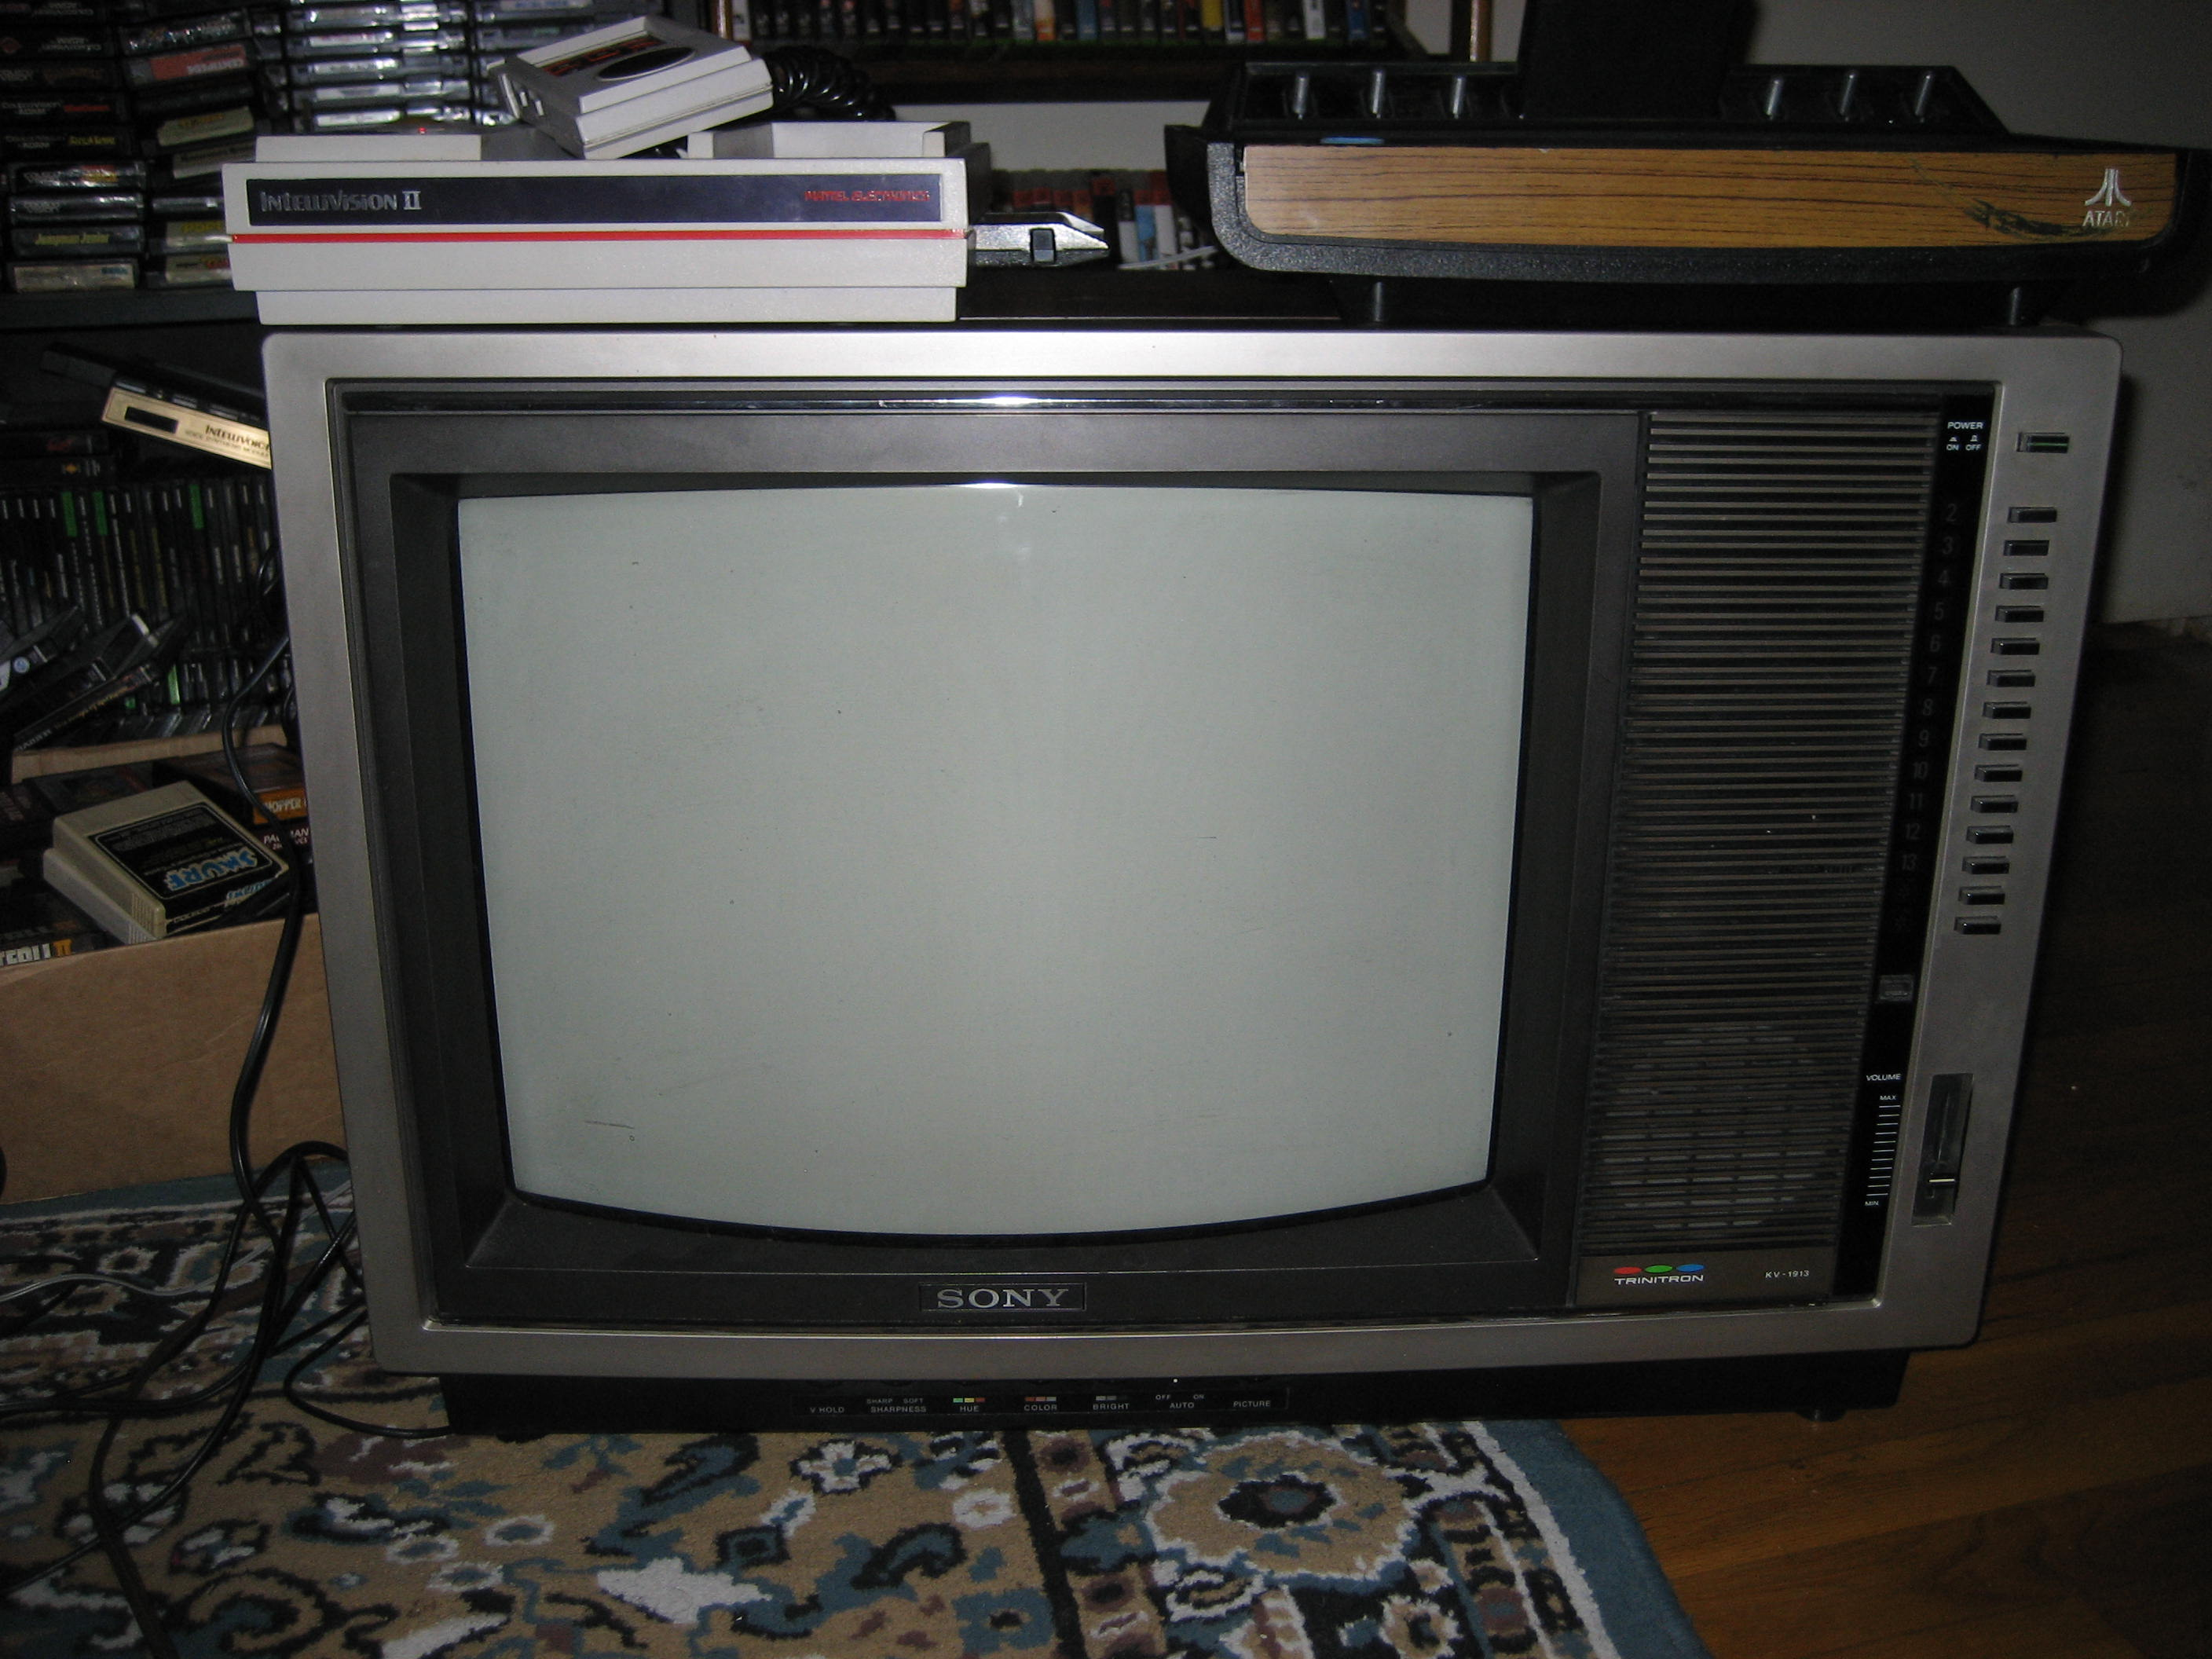 I Picked Up A Sony Trinitron Crt Tv For Ten Bucks